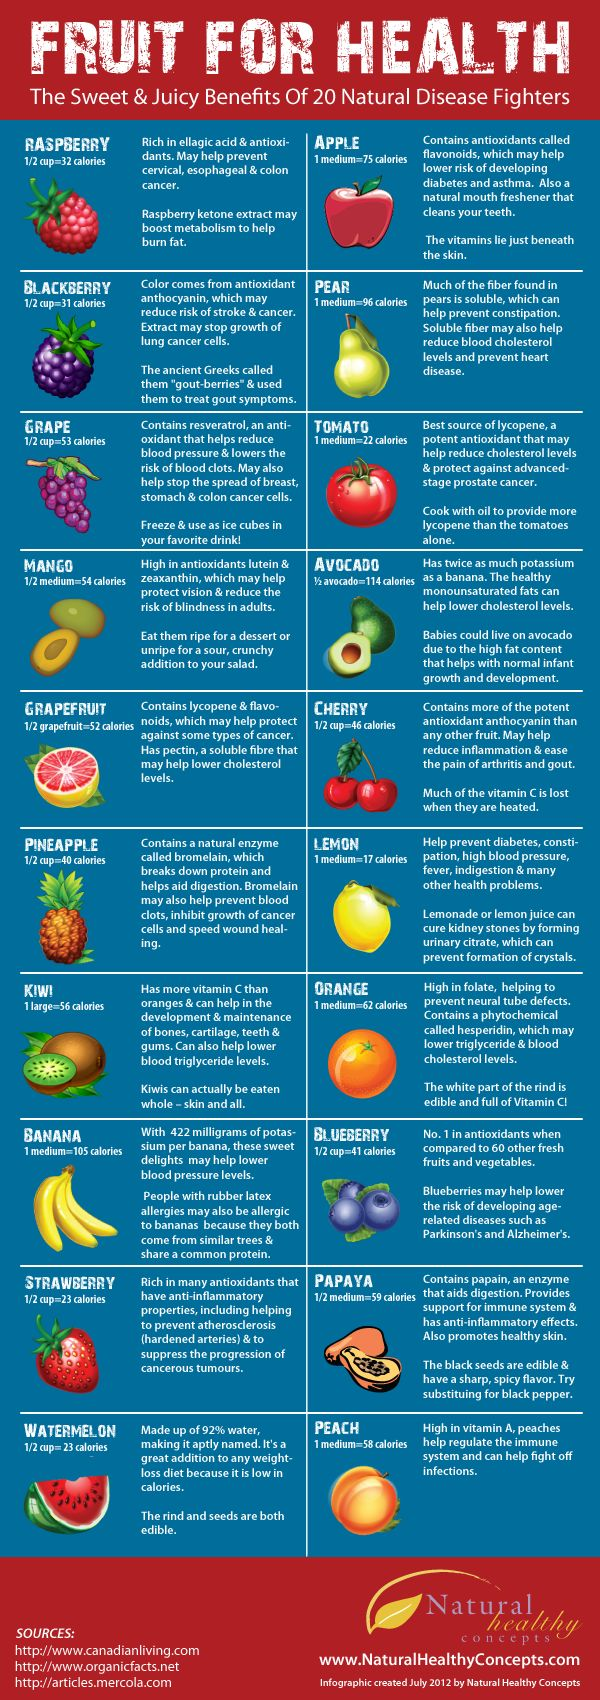 The Health Benefits of Fruit